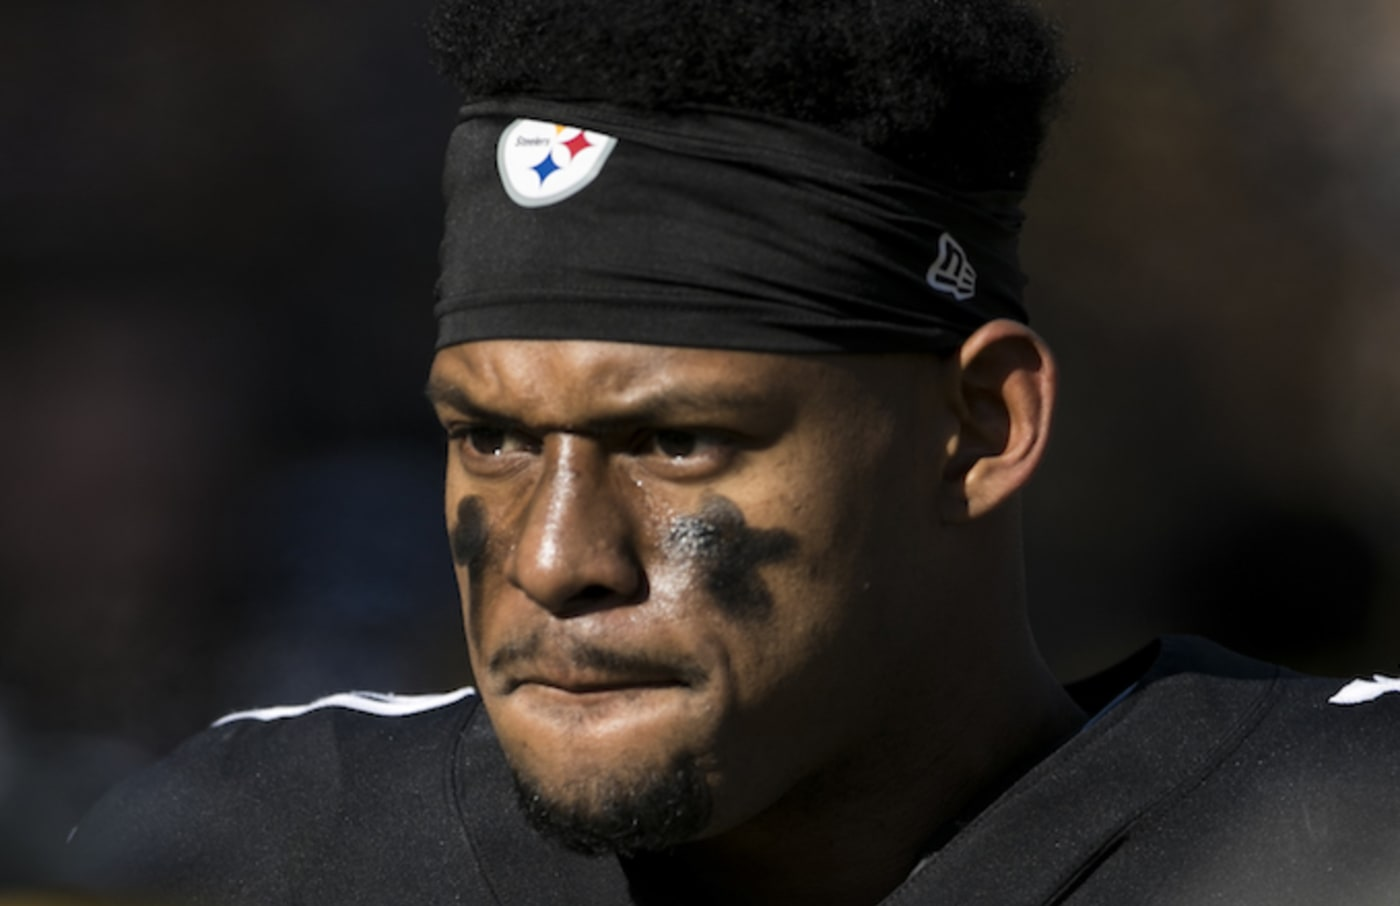 JuJu Smith Schuster during the AFC Divisional game.